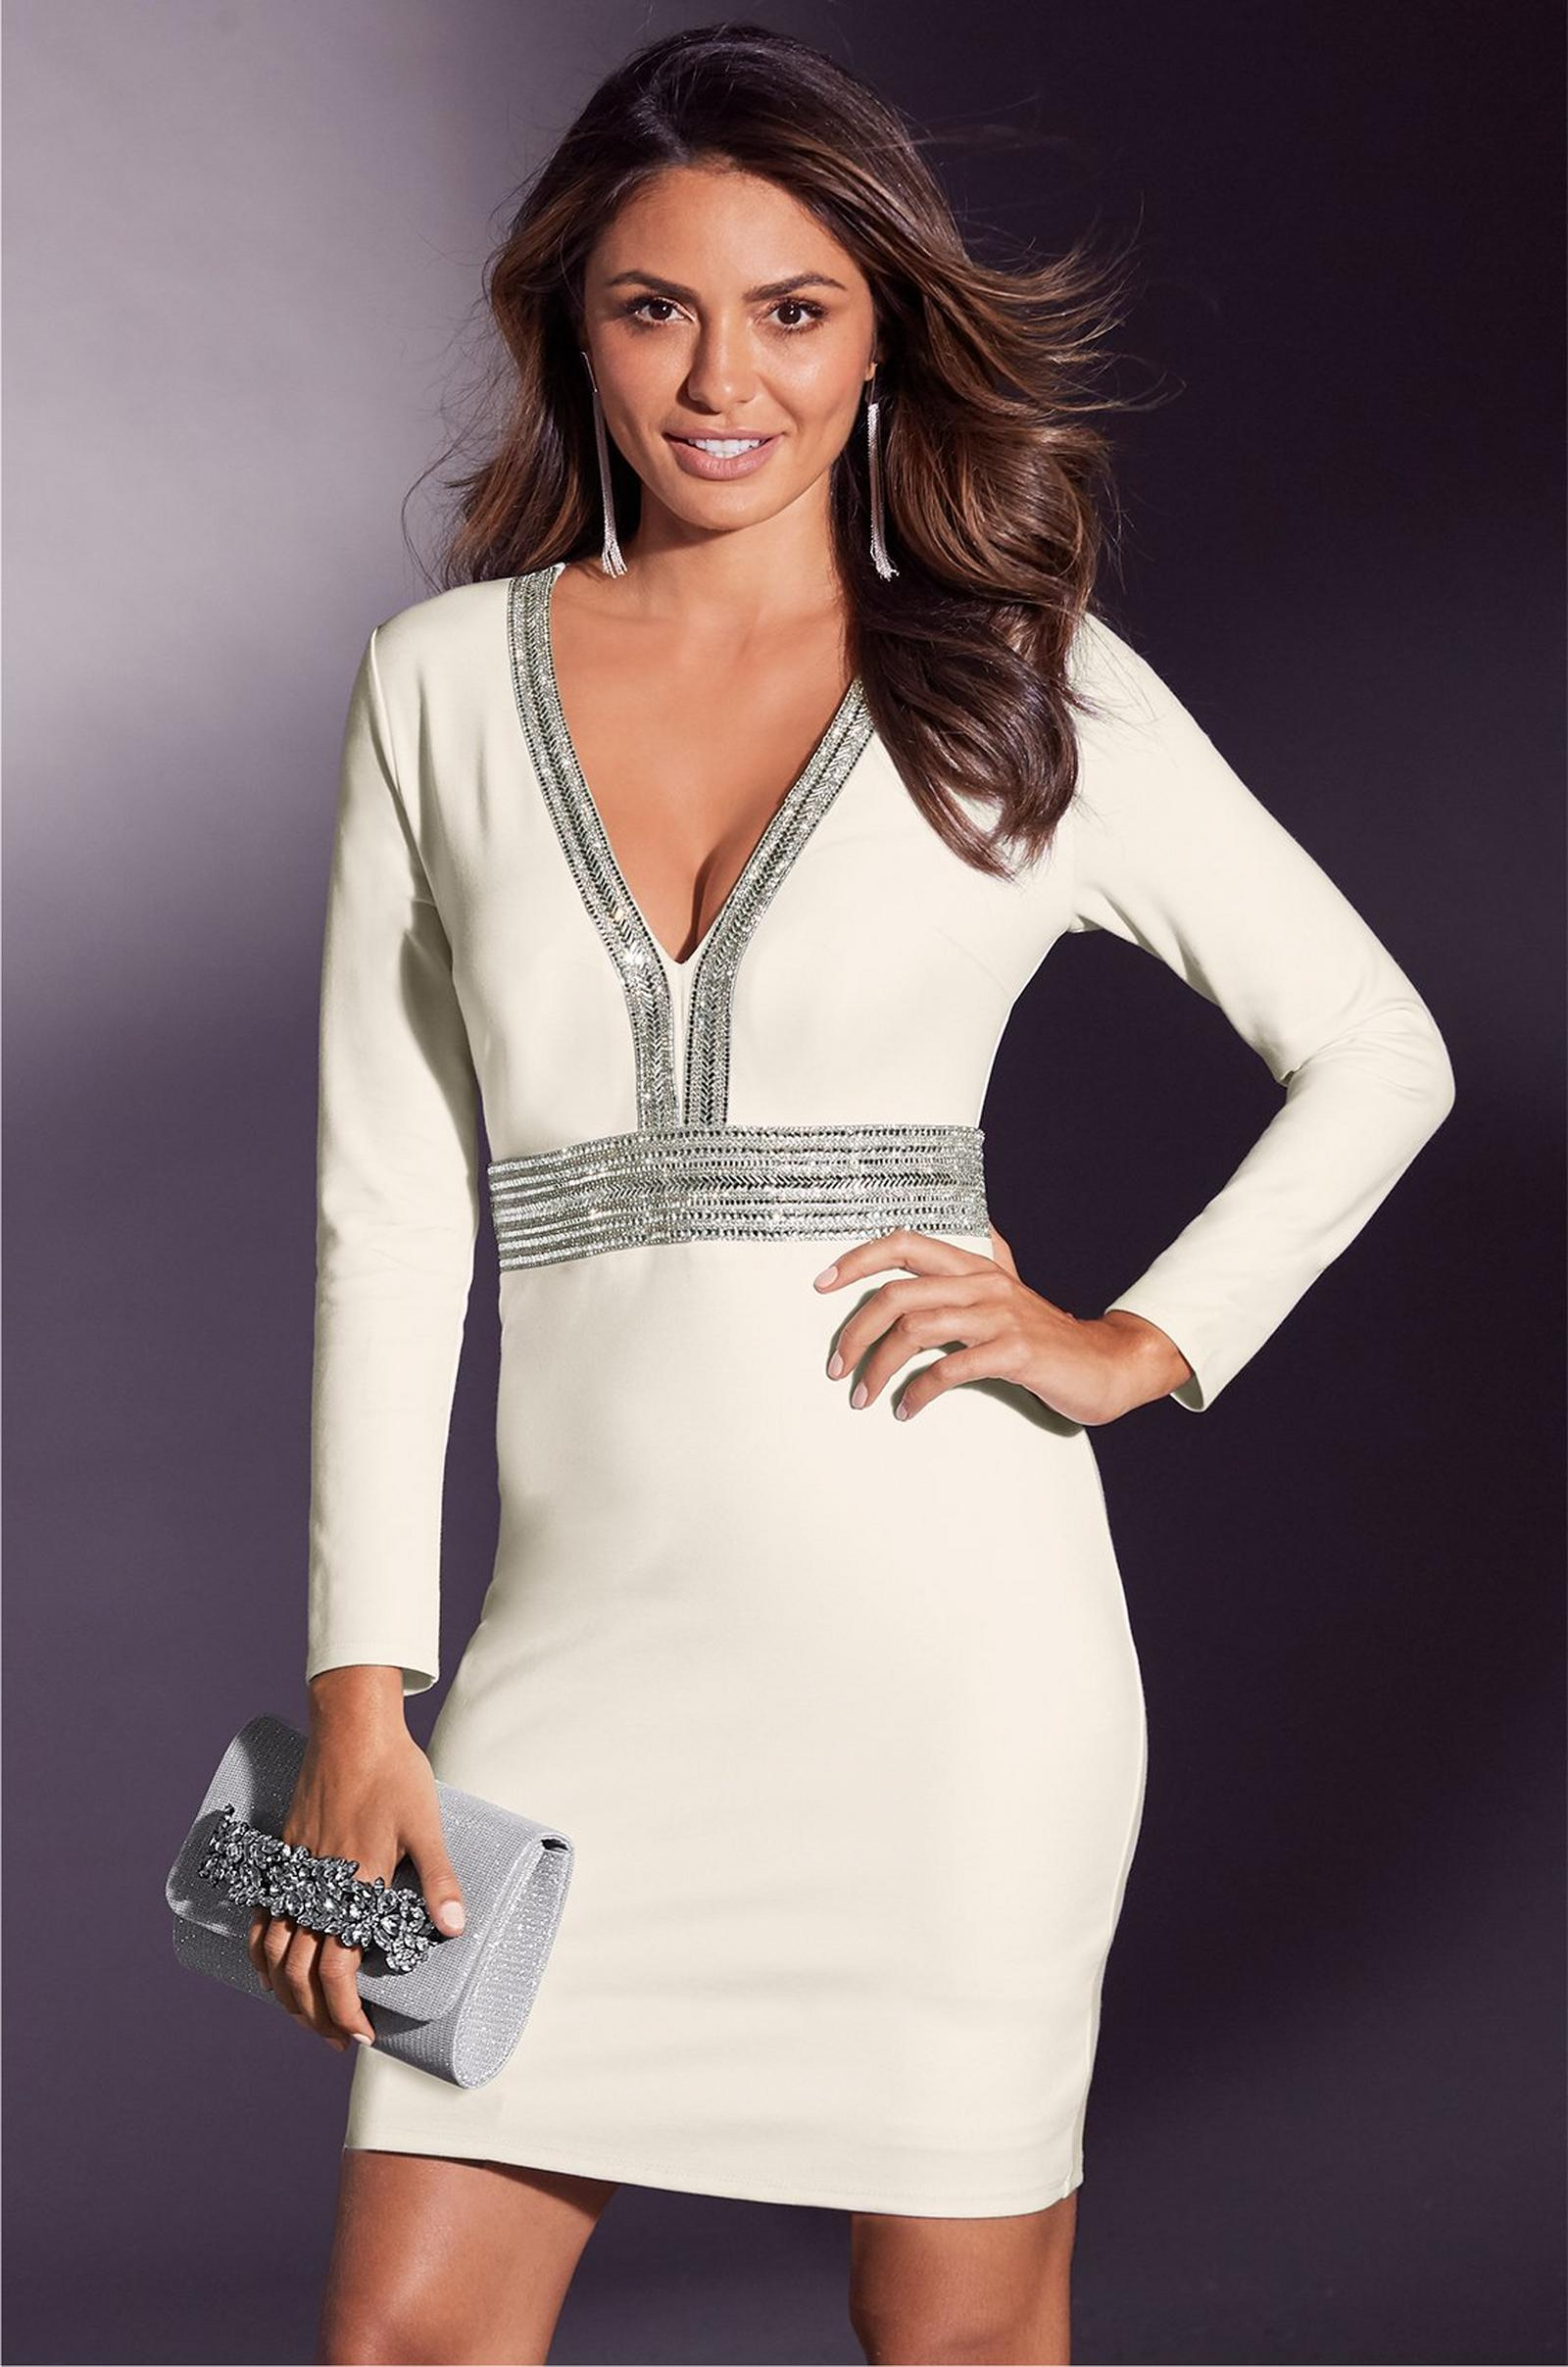 model wearing white long sleeve cocktail dress with silver embellishments while holding a silver holiday clutch.